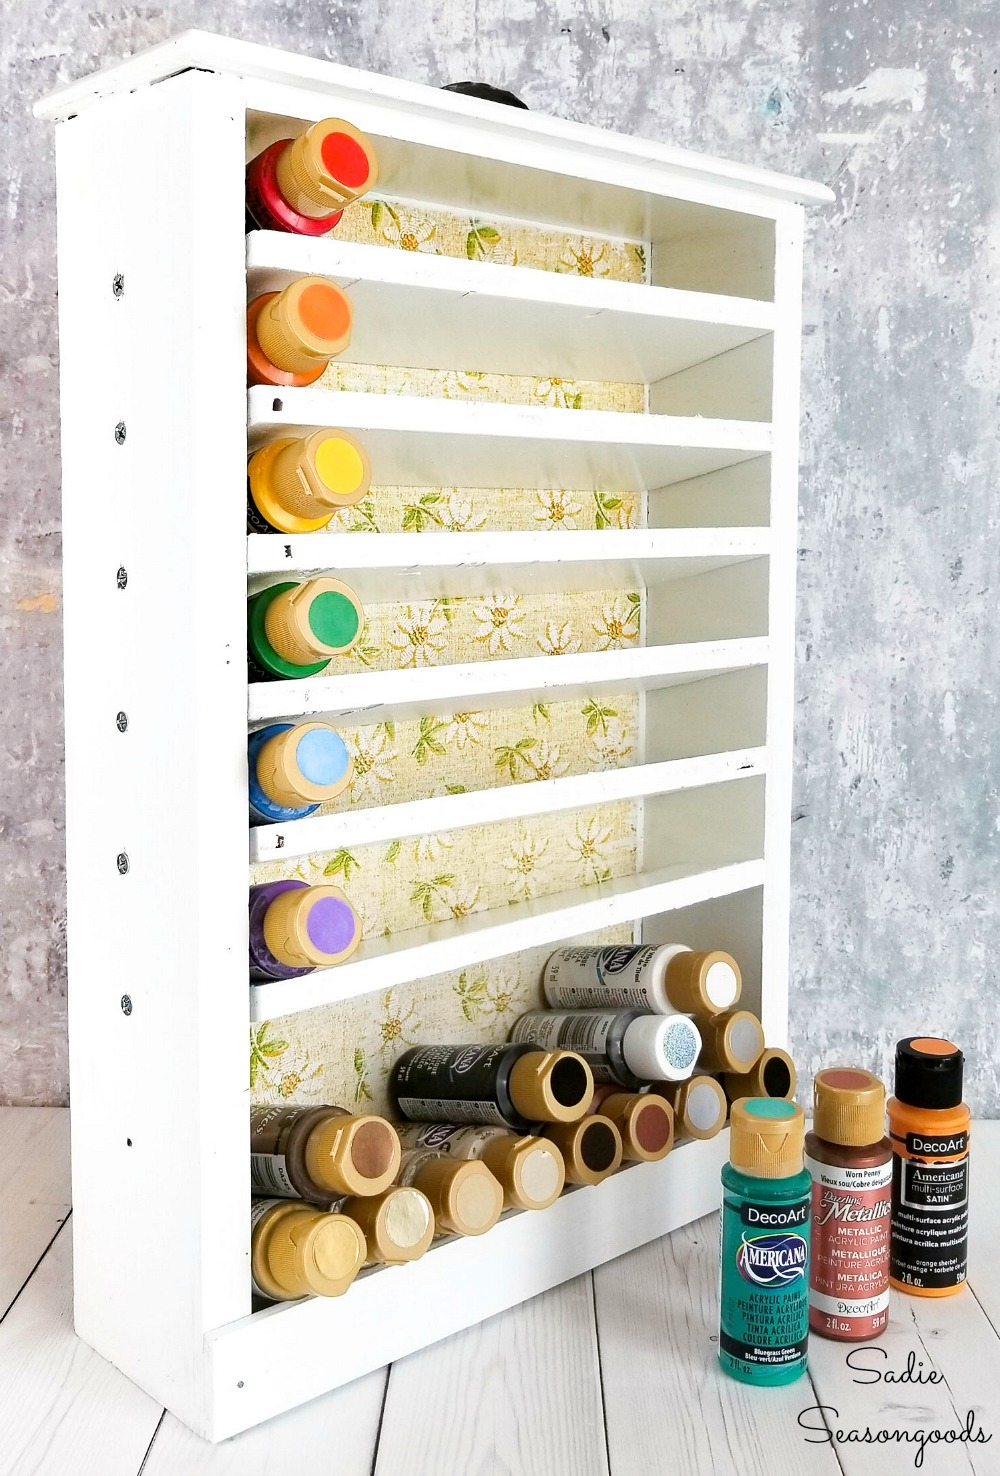 Acrylic paint storage rack in an old kitchen drawer